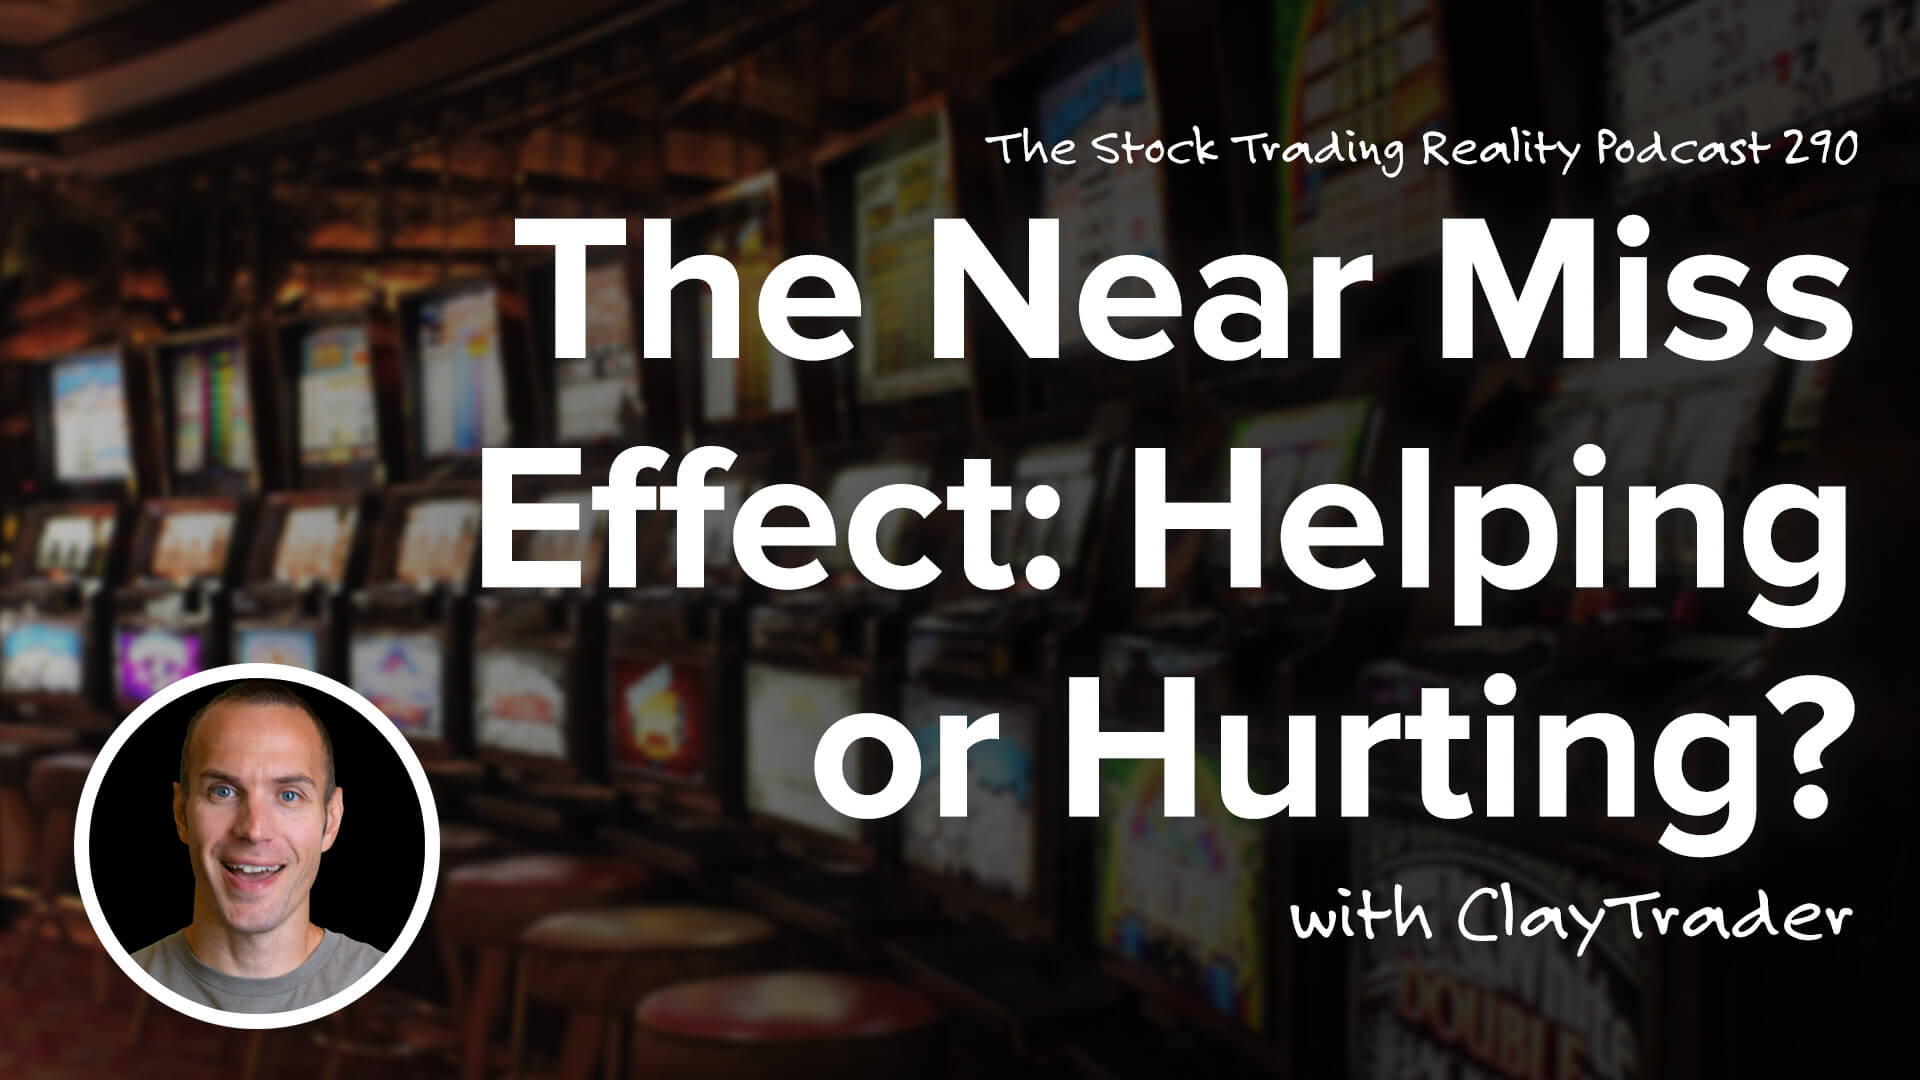 The Near Miss Effect: Helping or Hurting? | STR 290